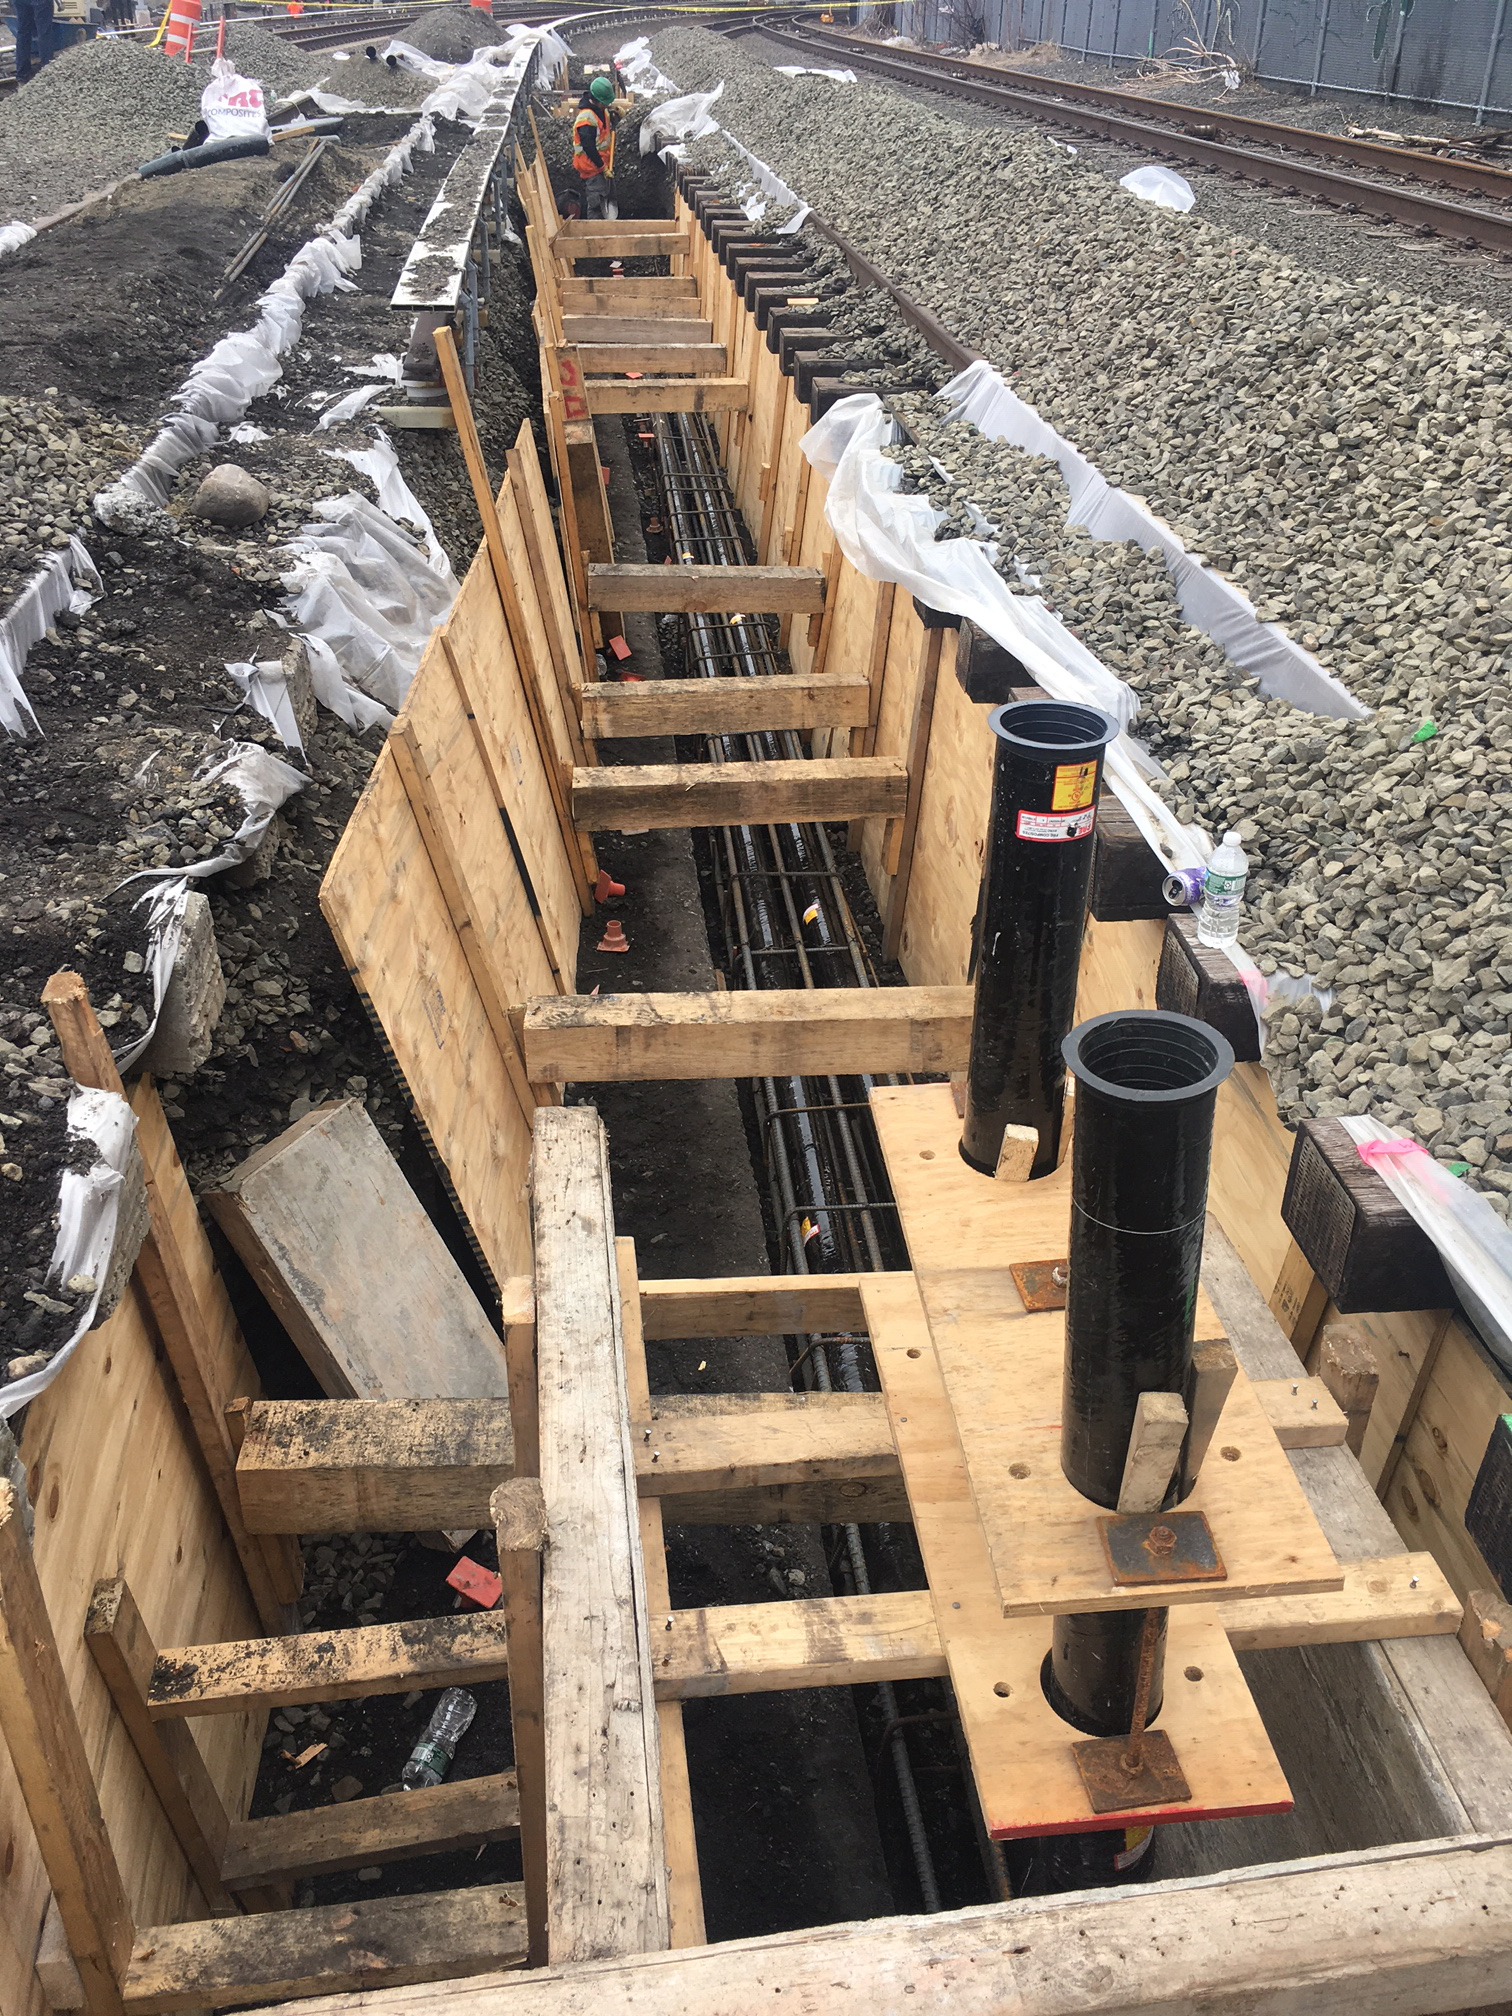 Installed rebar and conduit for the negative traction power ductbank for the future Mid-Day Storage Yard in Queens. 04-12-19